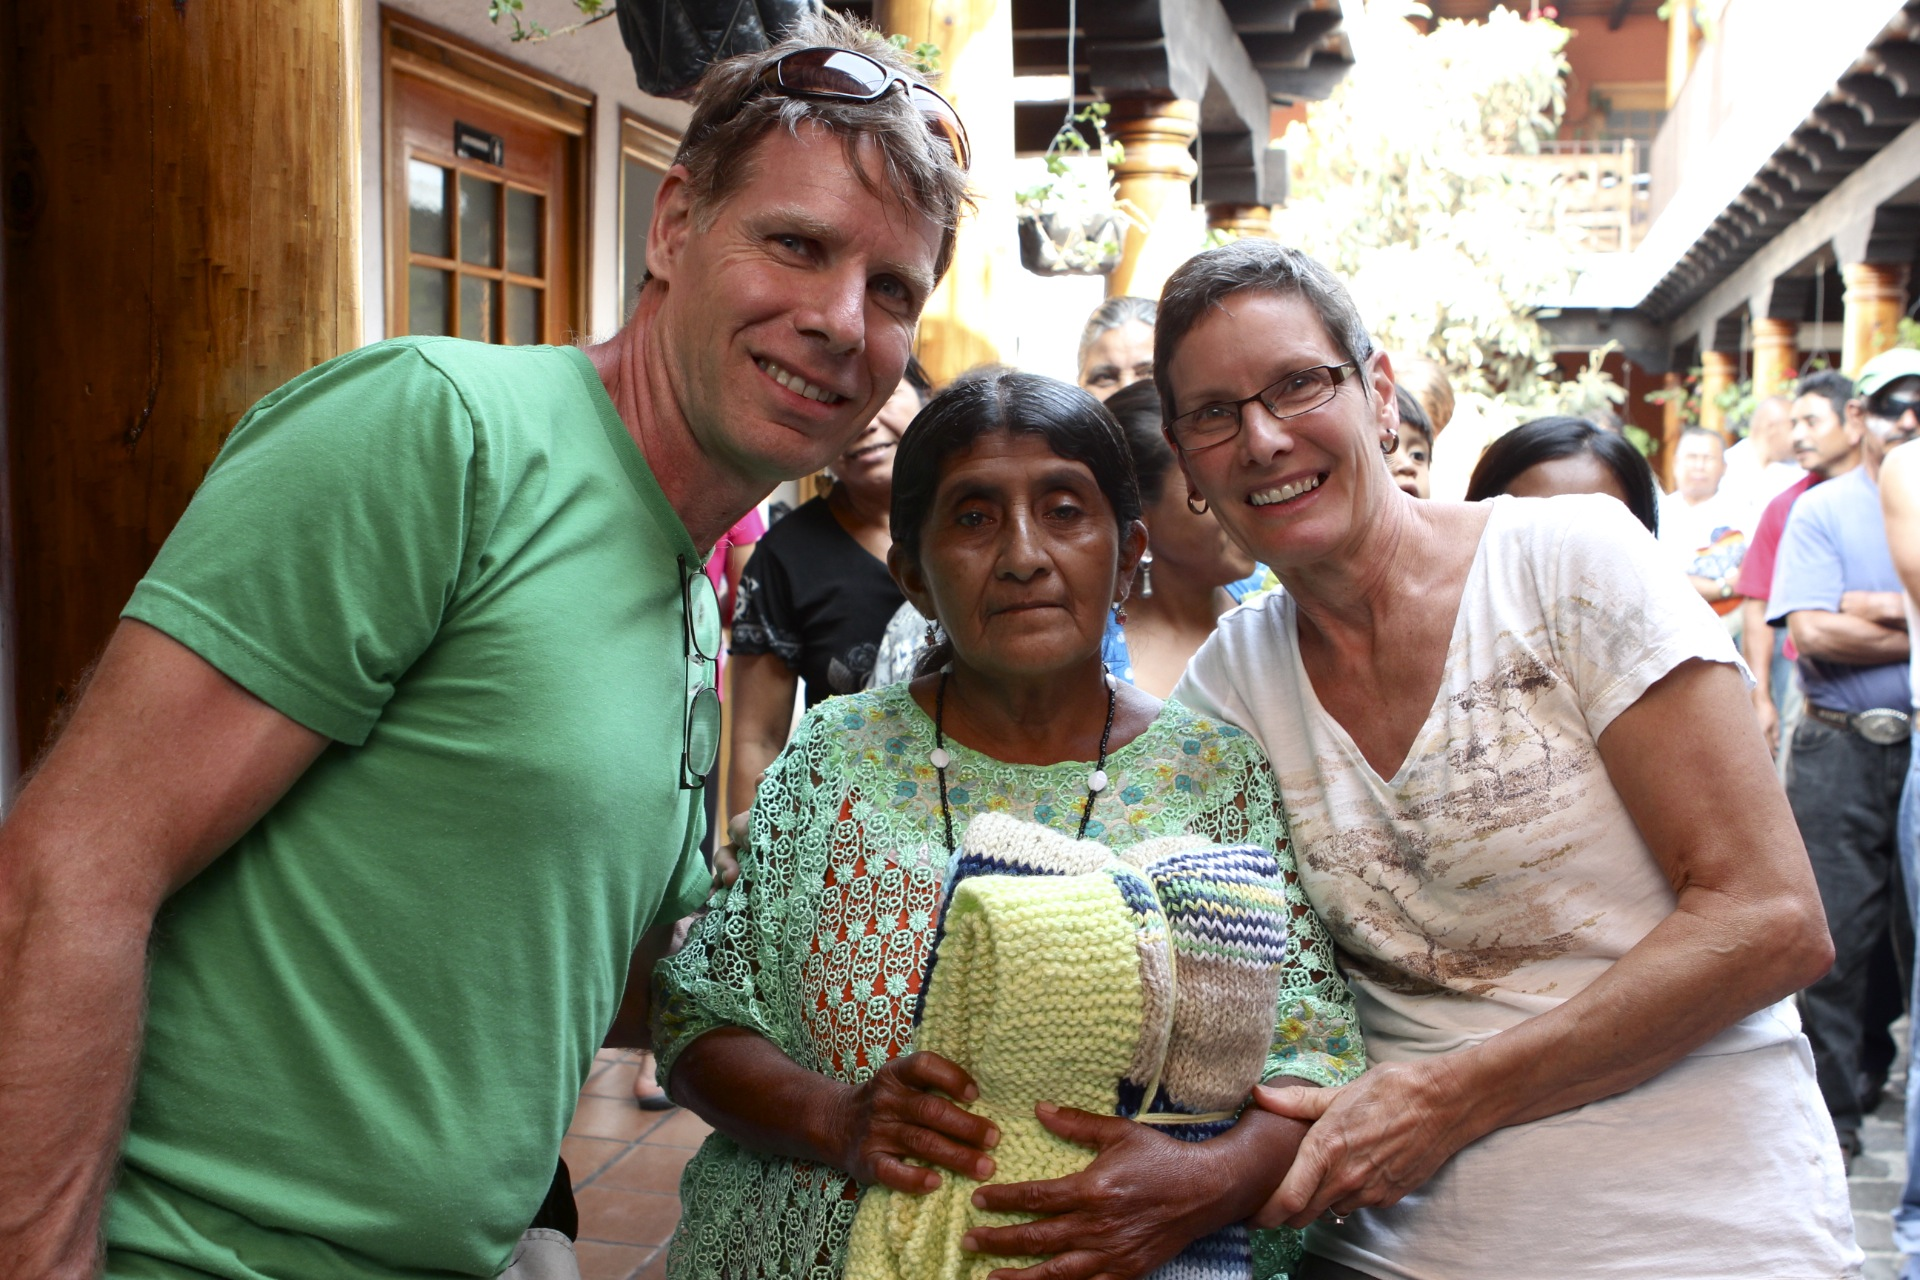 Orville and Grace with one of the blanket recipients at Casa De Fe in Antigua, where Conexions brings knitted blankets.  The recipients are patients at a local hospice, waiting for or recovering from surgeries, and blankets make the experience a little better.  Some have traveled ten hours to receive a surgery.